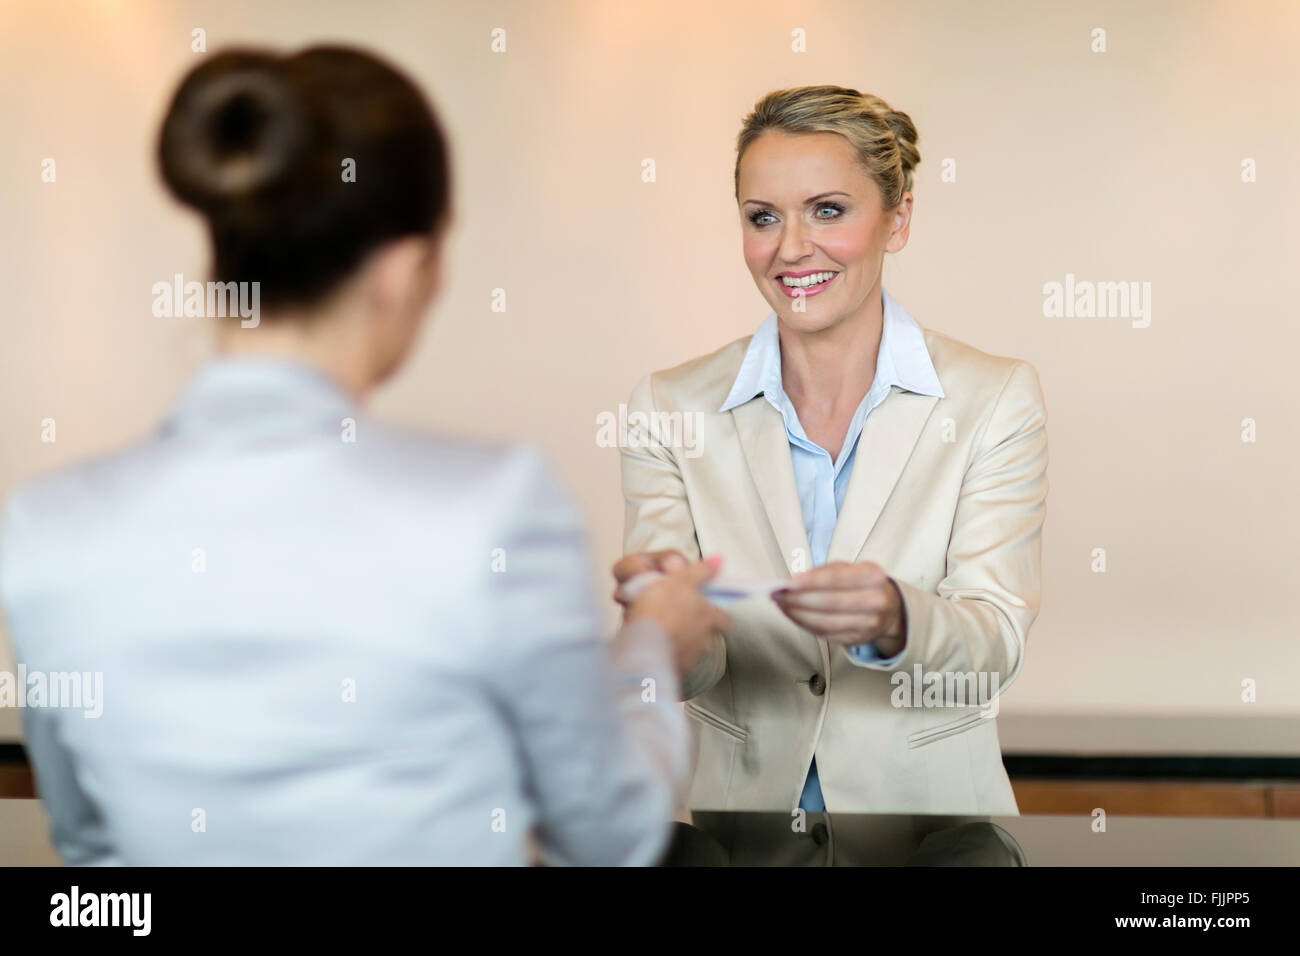 friendly hotel receptionist handing over key to customer - Stock Image